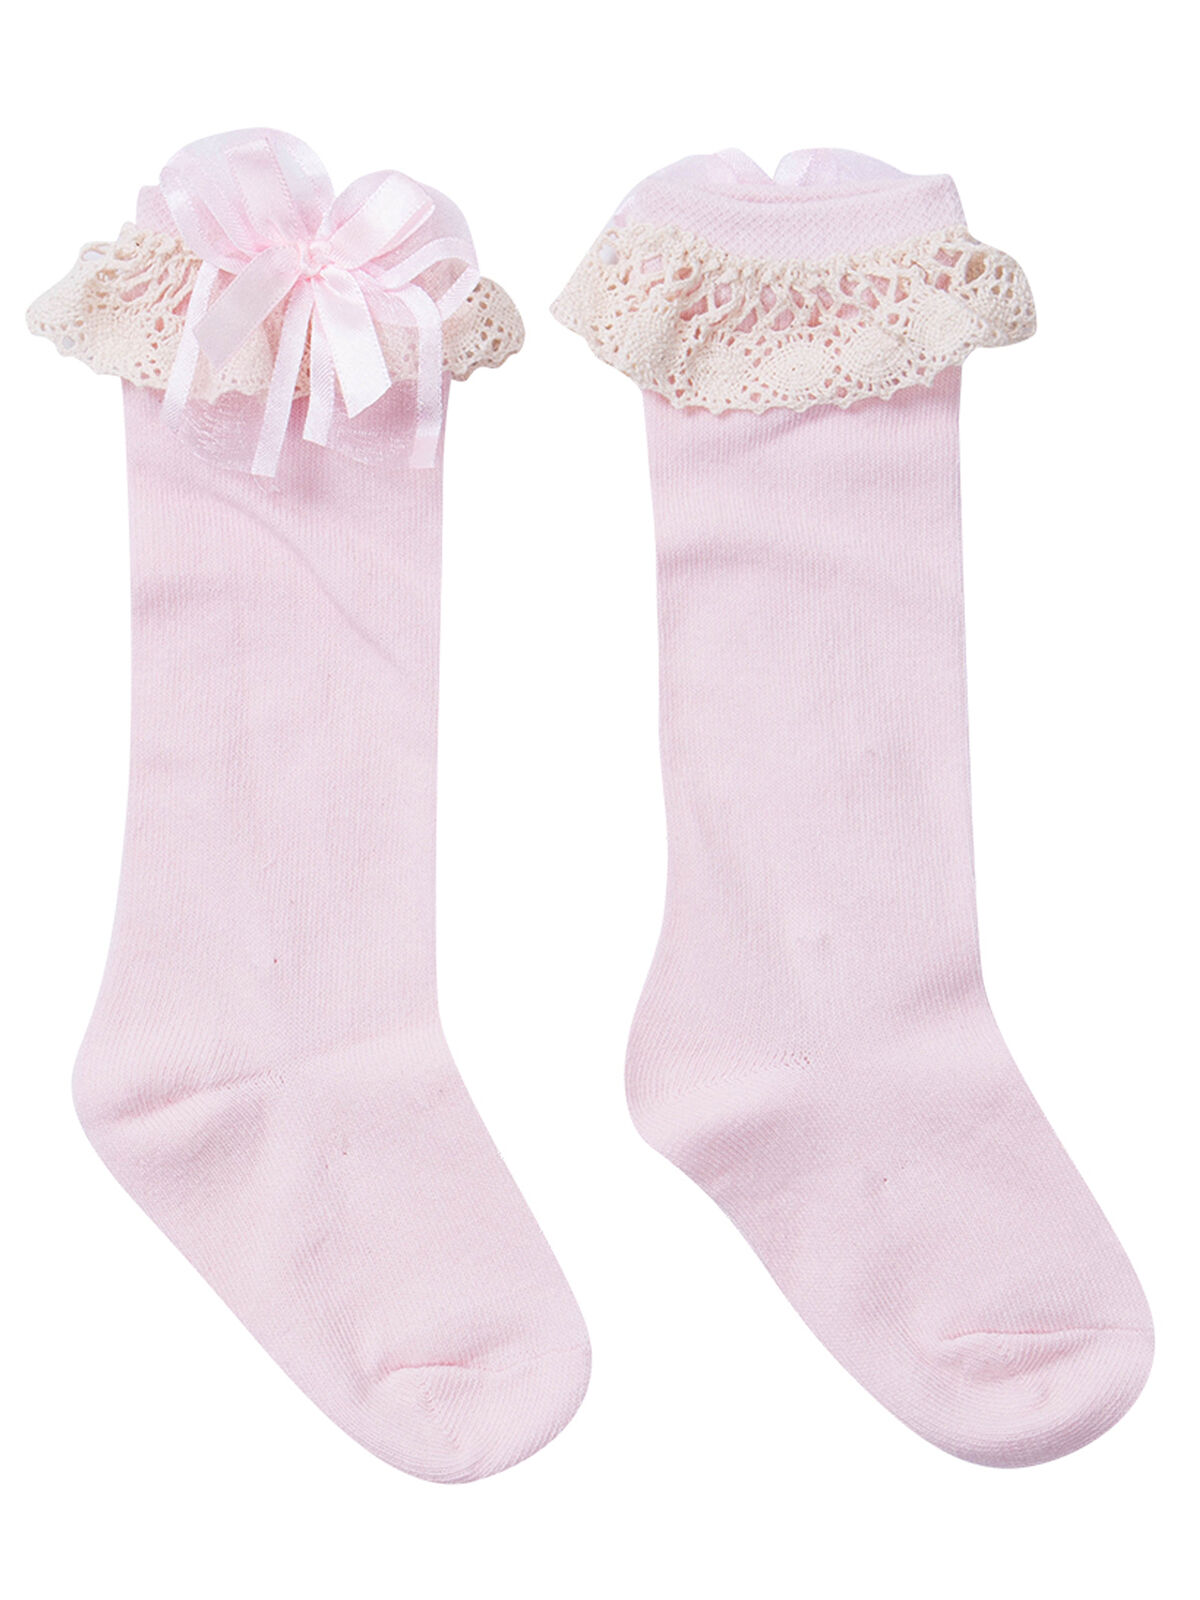 4 Colours Sizes Newborn to 24 mths See Offer Frilly Tutu Bow Ankle Socks